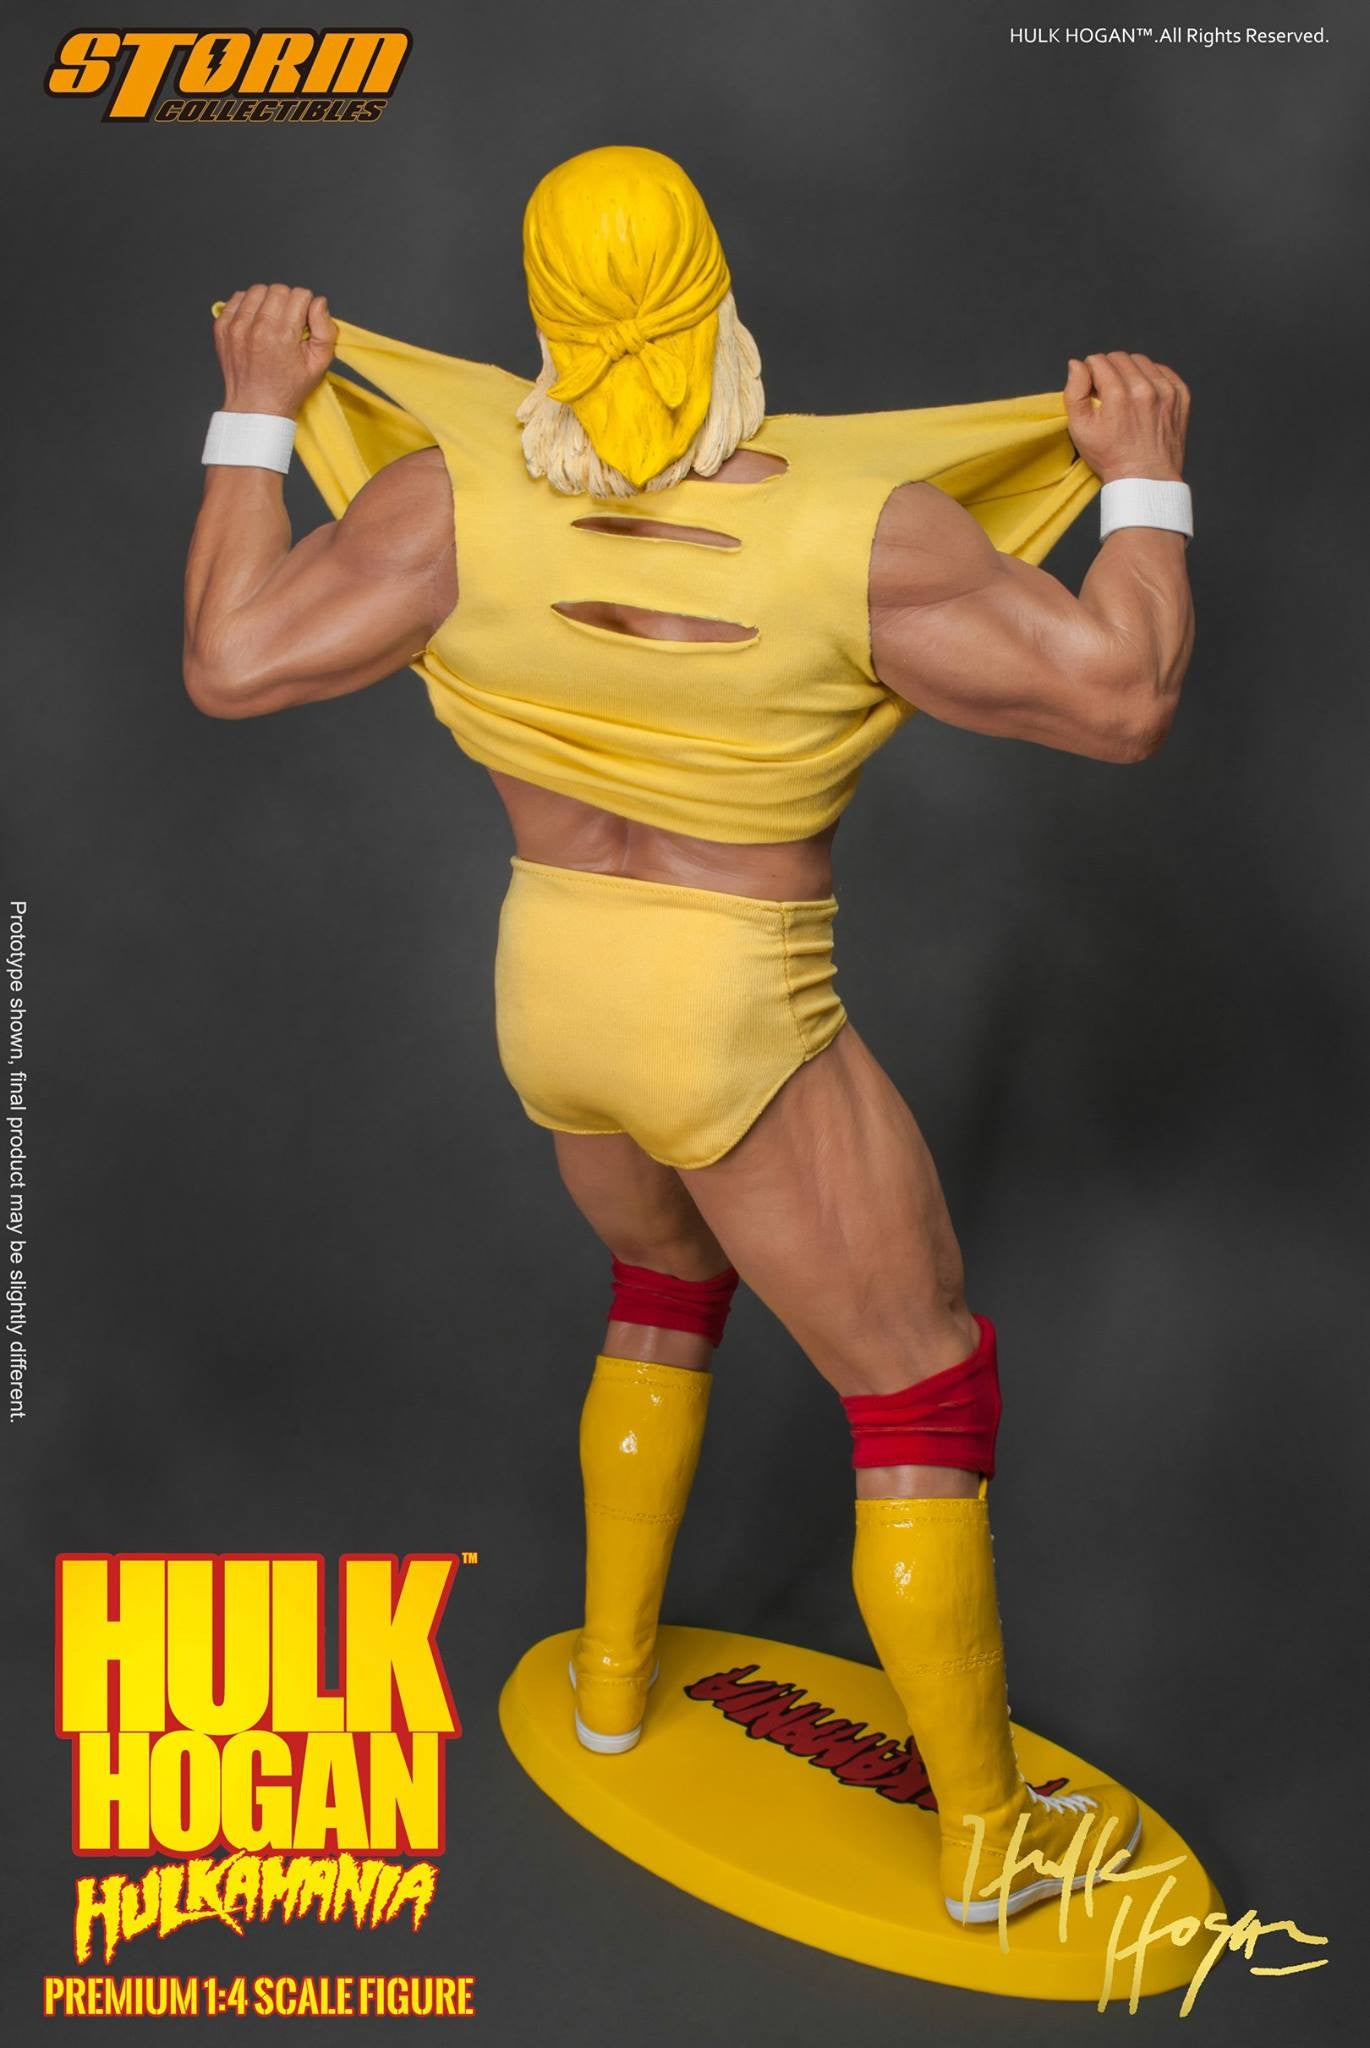 Storm Collectibles - 1/4th Scale Premium Figure - Hulk Hogan Hulkamania - Marvelous Toys - 11